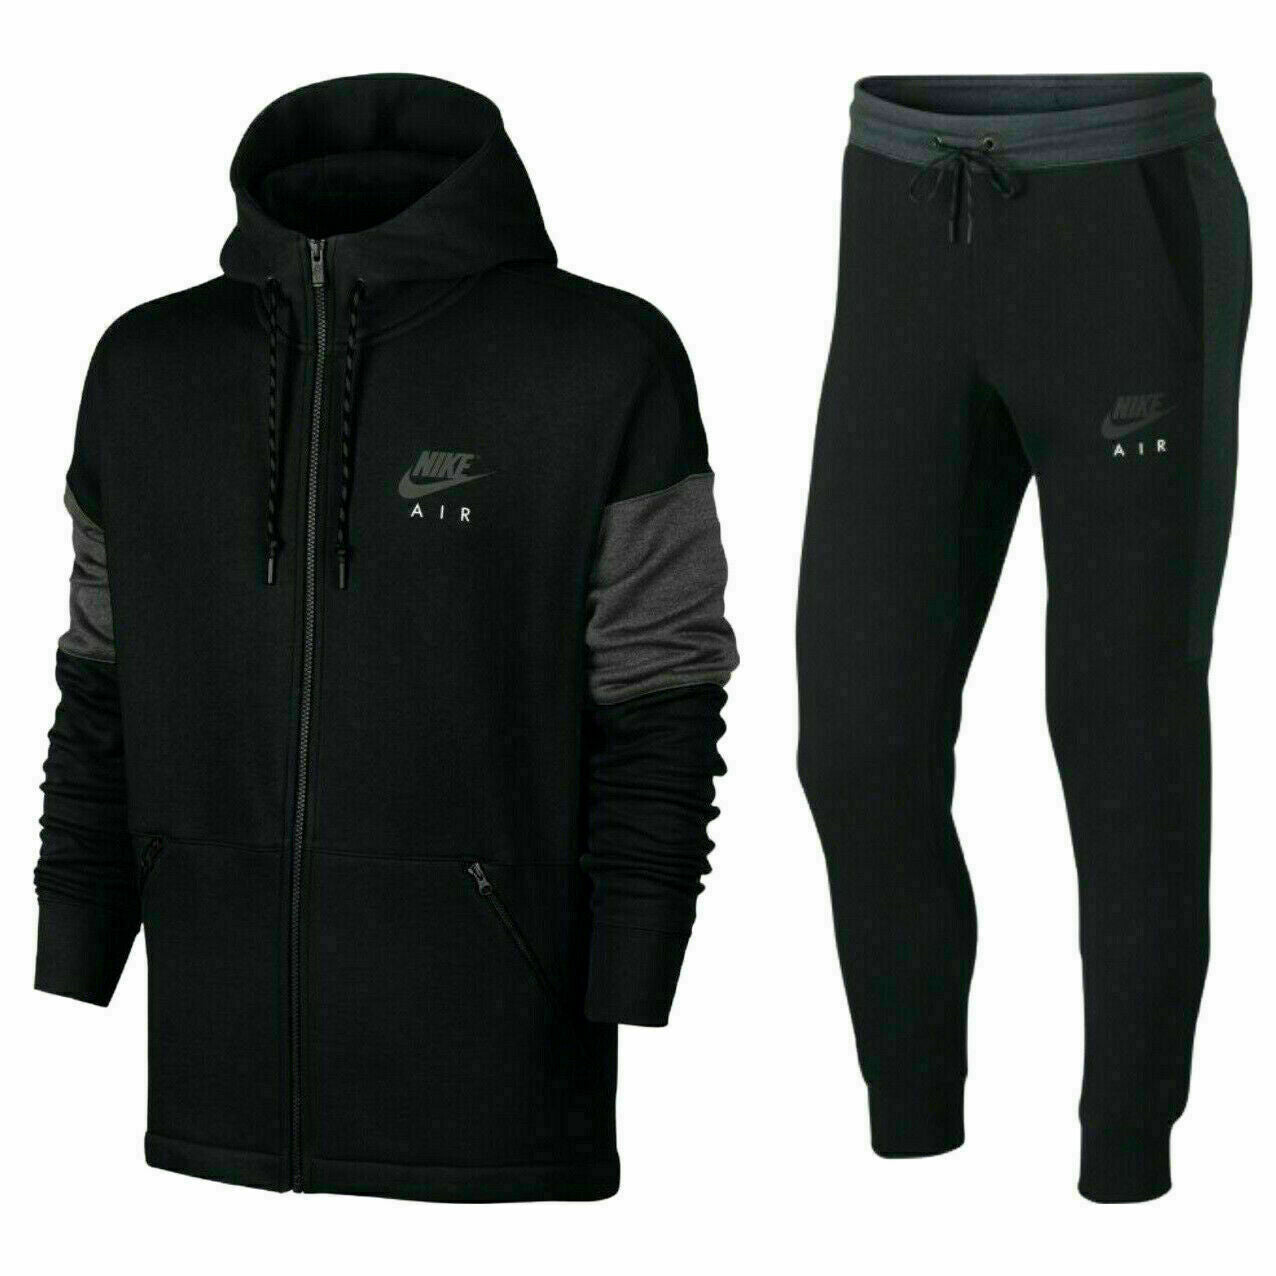 Nike Mens Air Full Tracksuit - Valley Sports UK